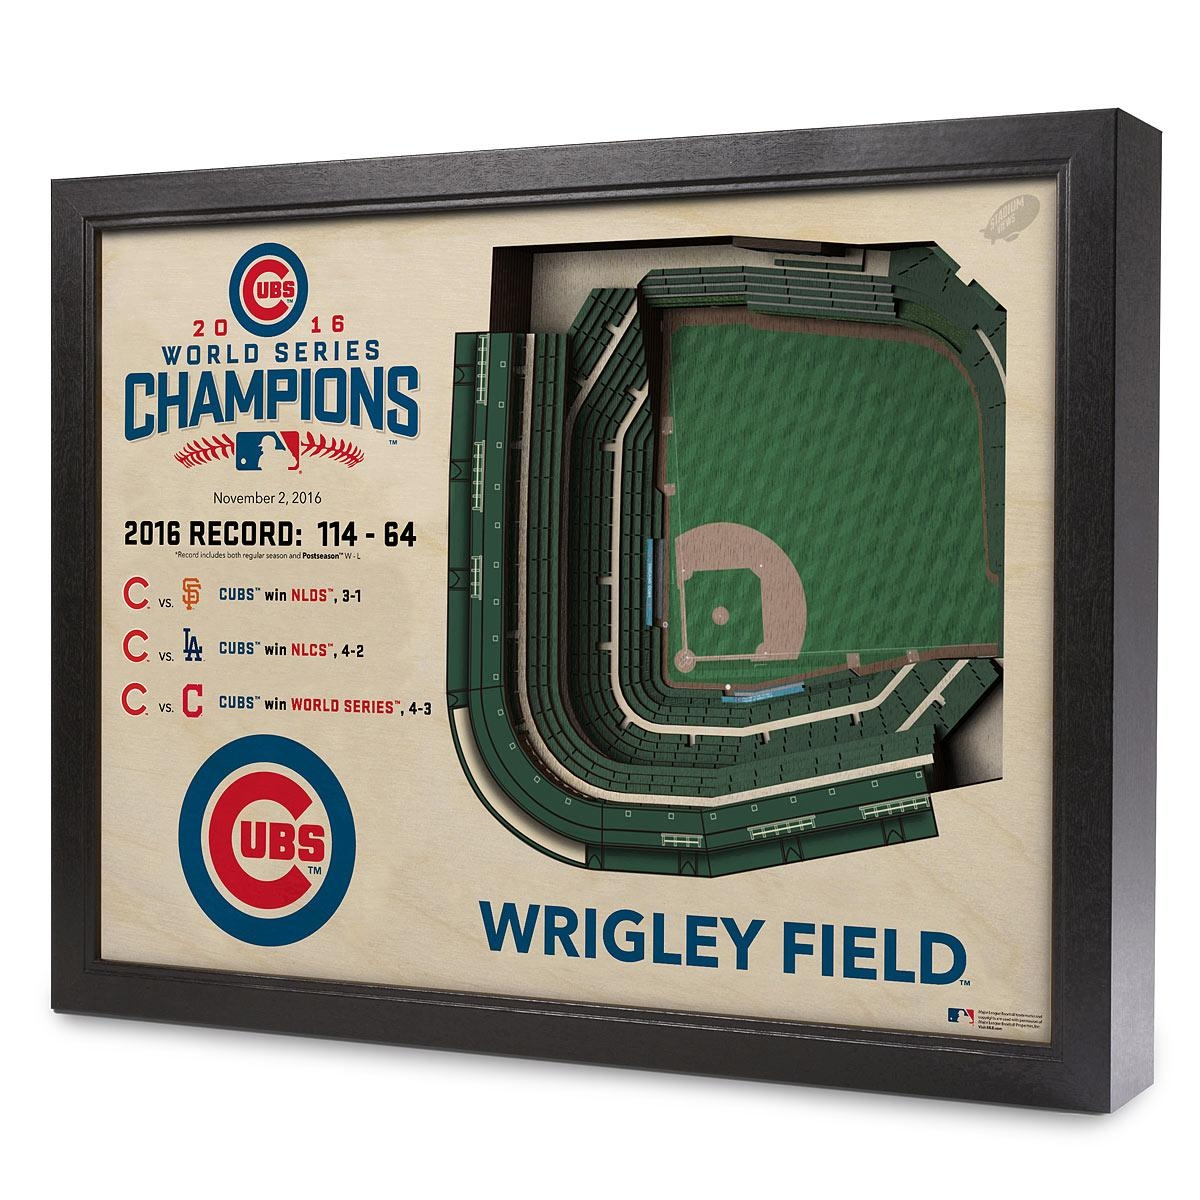 Baseball Stadium Art | Wrigley Field | Uncommongoods With Regard To Red Sox Wall Art (Image 3 of 20)